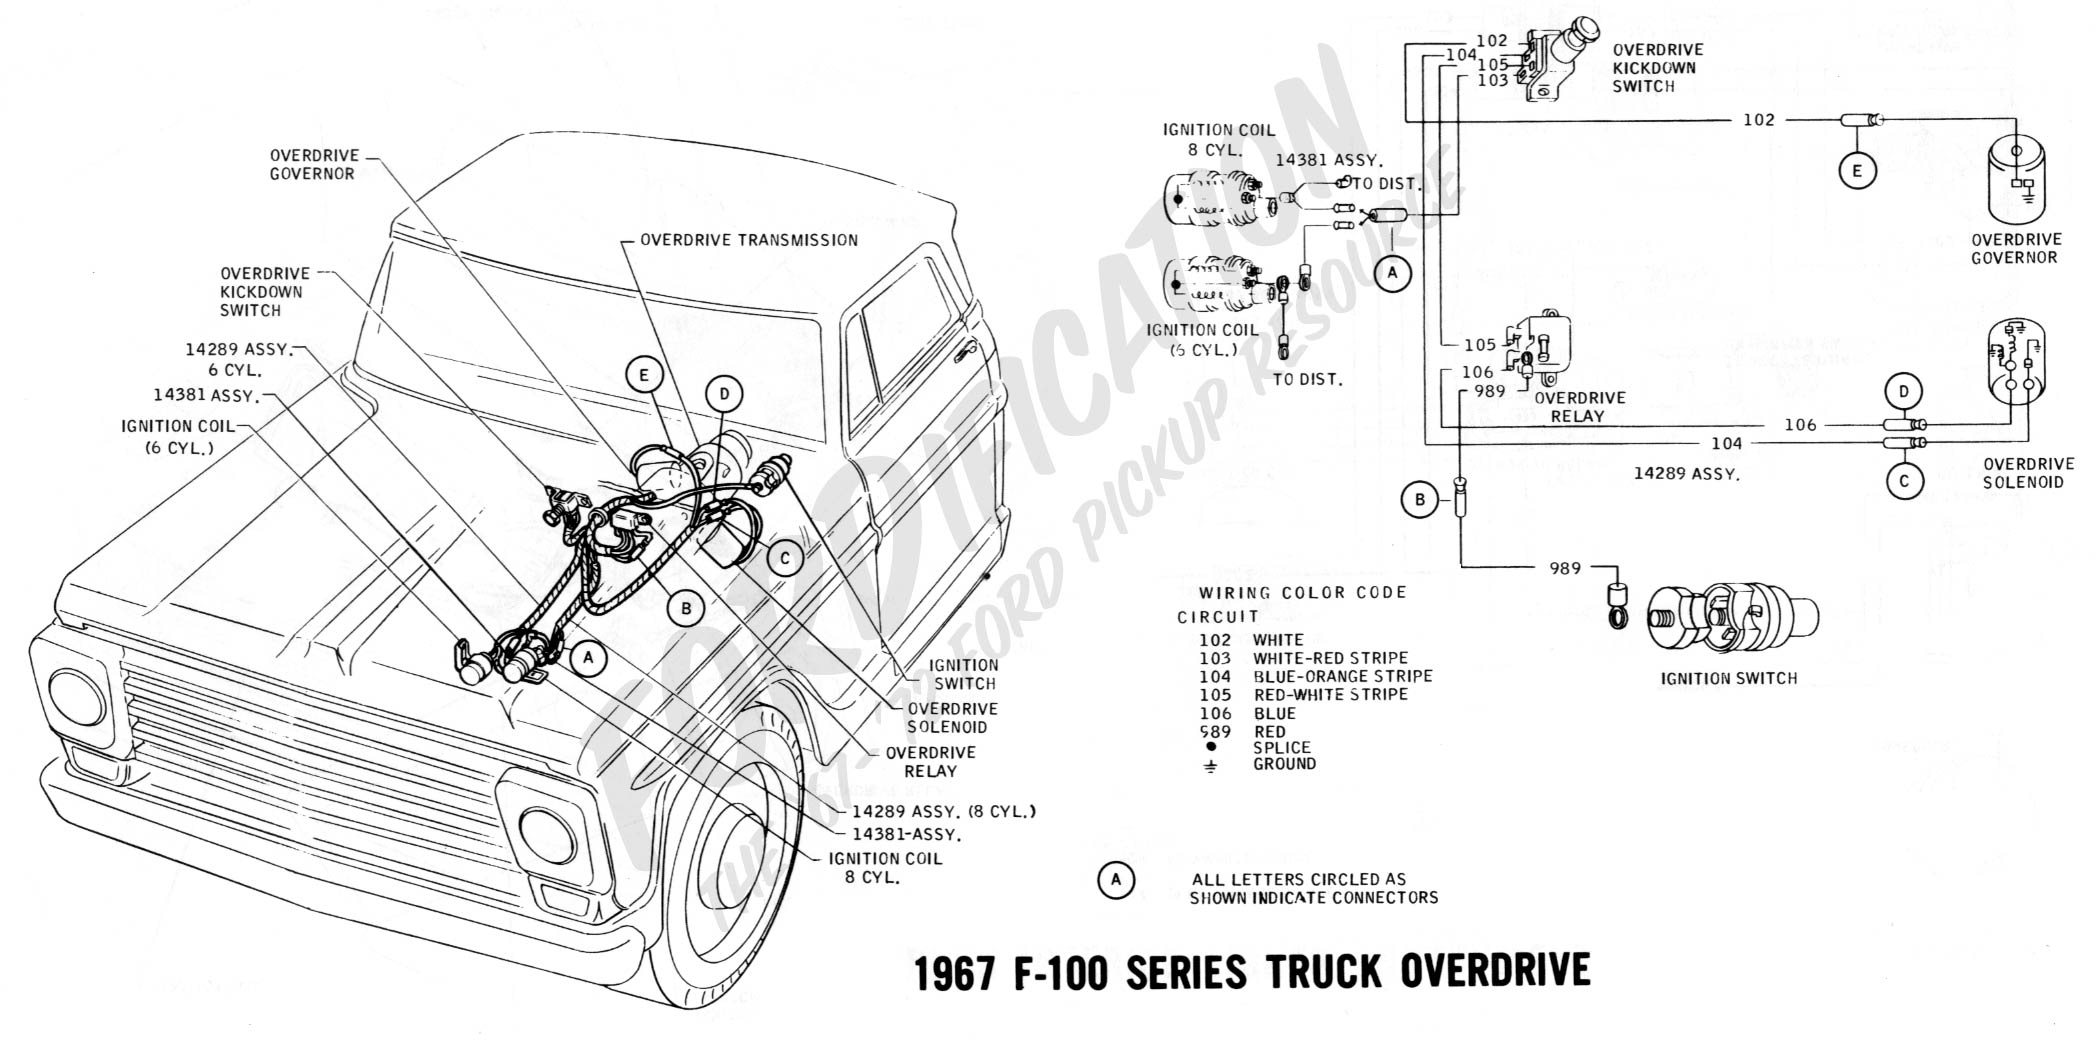 wiring 1967overdrive2 ford ignition coil wiring diagram dyna coil wiring diagram 1977 ford f100 wiring diagram at n-0.co